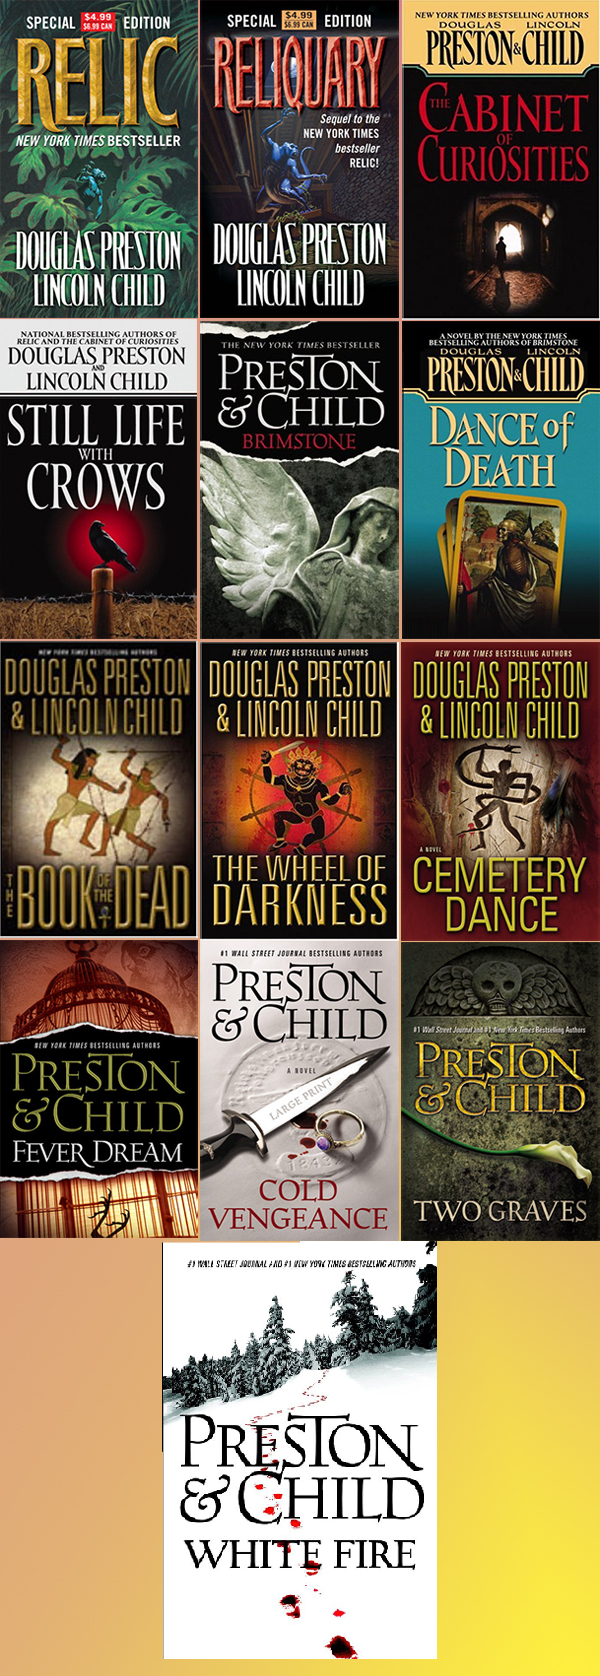 pendergast order books novels preston child douglas lincoln series mystery reading agent mysterysequels horror movie aloysius characters character read newest